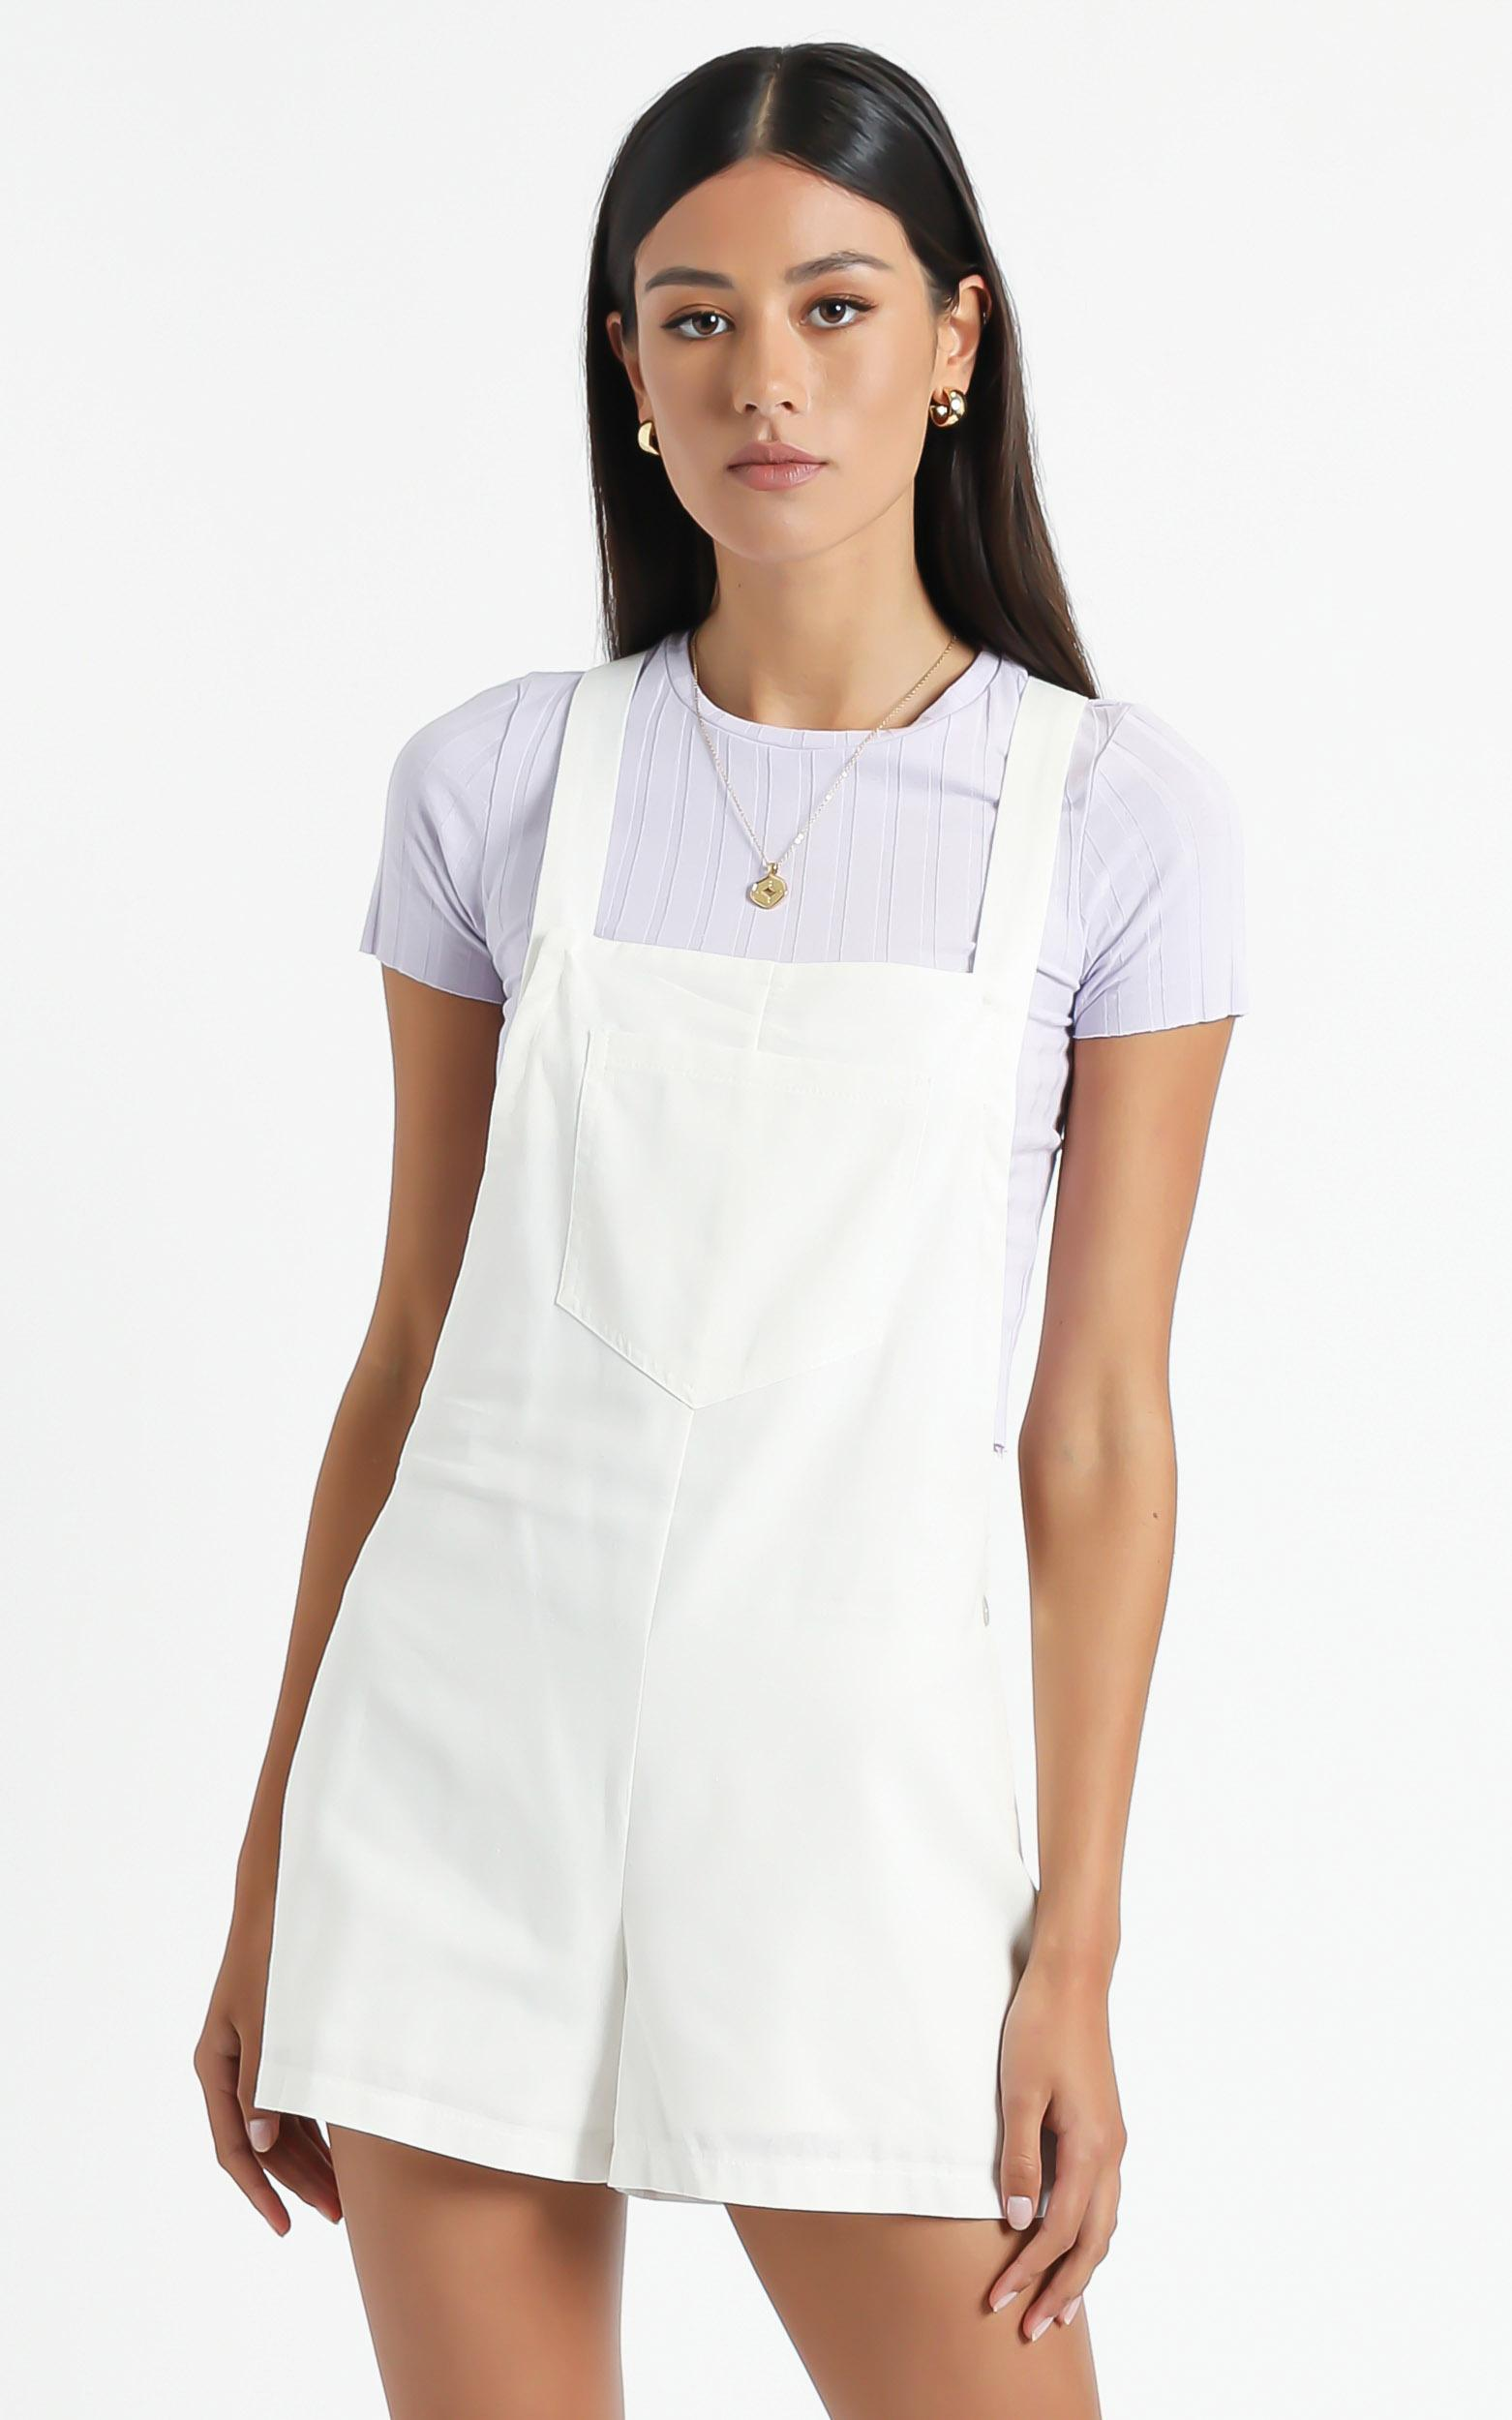 Kailua Playsuit in White - 6 (XS), White, hi-res image number null